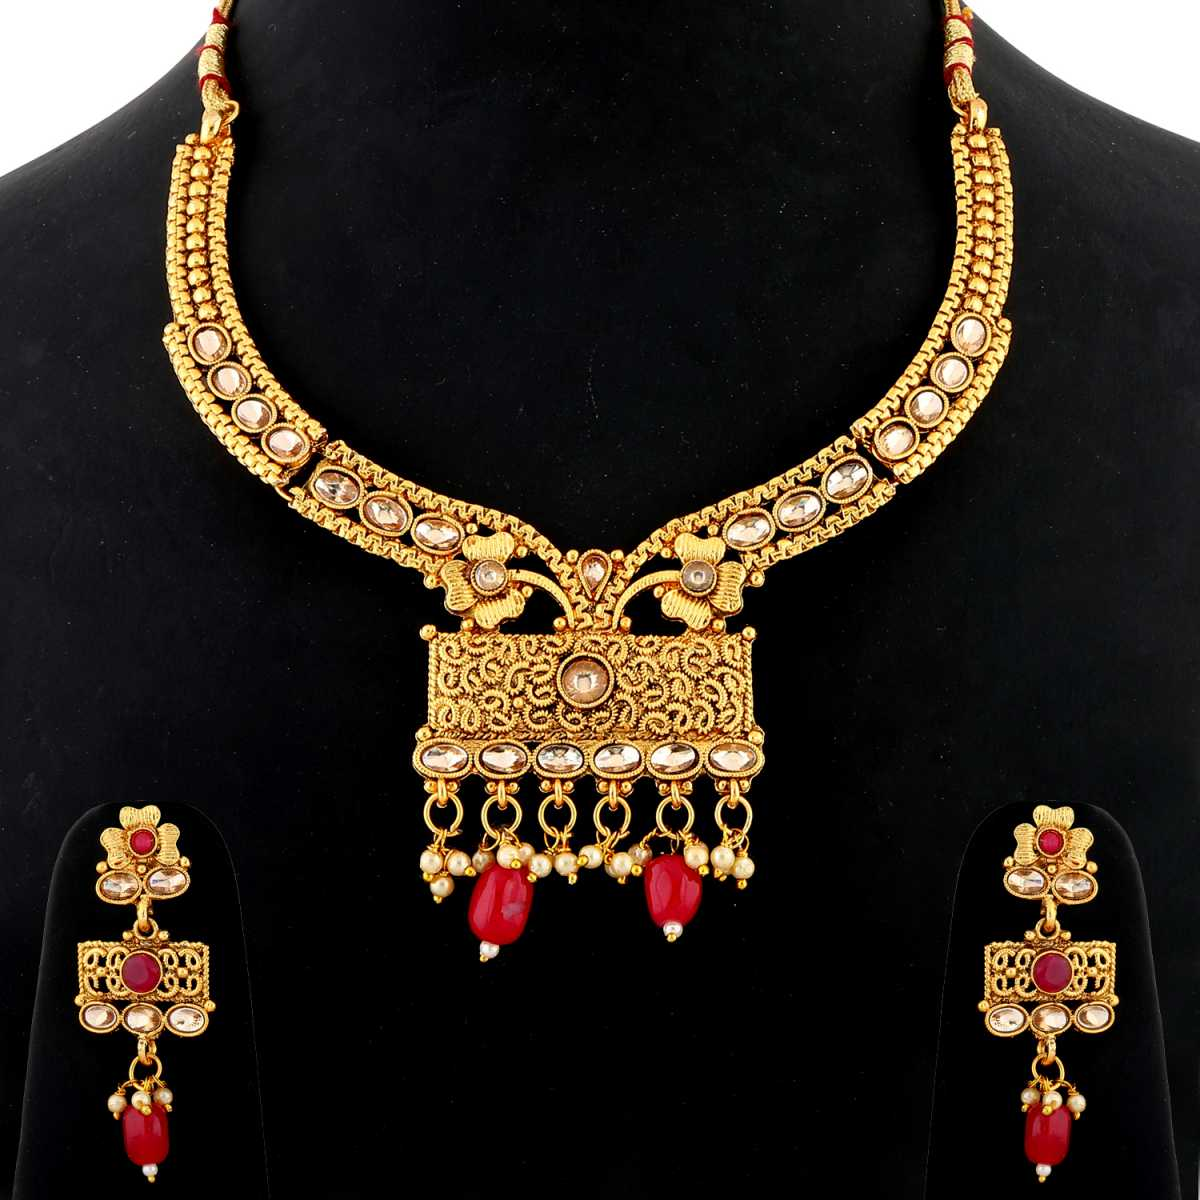 Silver Shine Traditional Gold Plated Elegant Kundan Stone Studded Red Bead Drop Designer Bridal wedding Necklace Jewellery Set for Girls and women